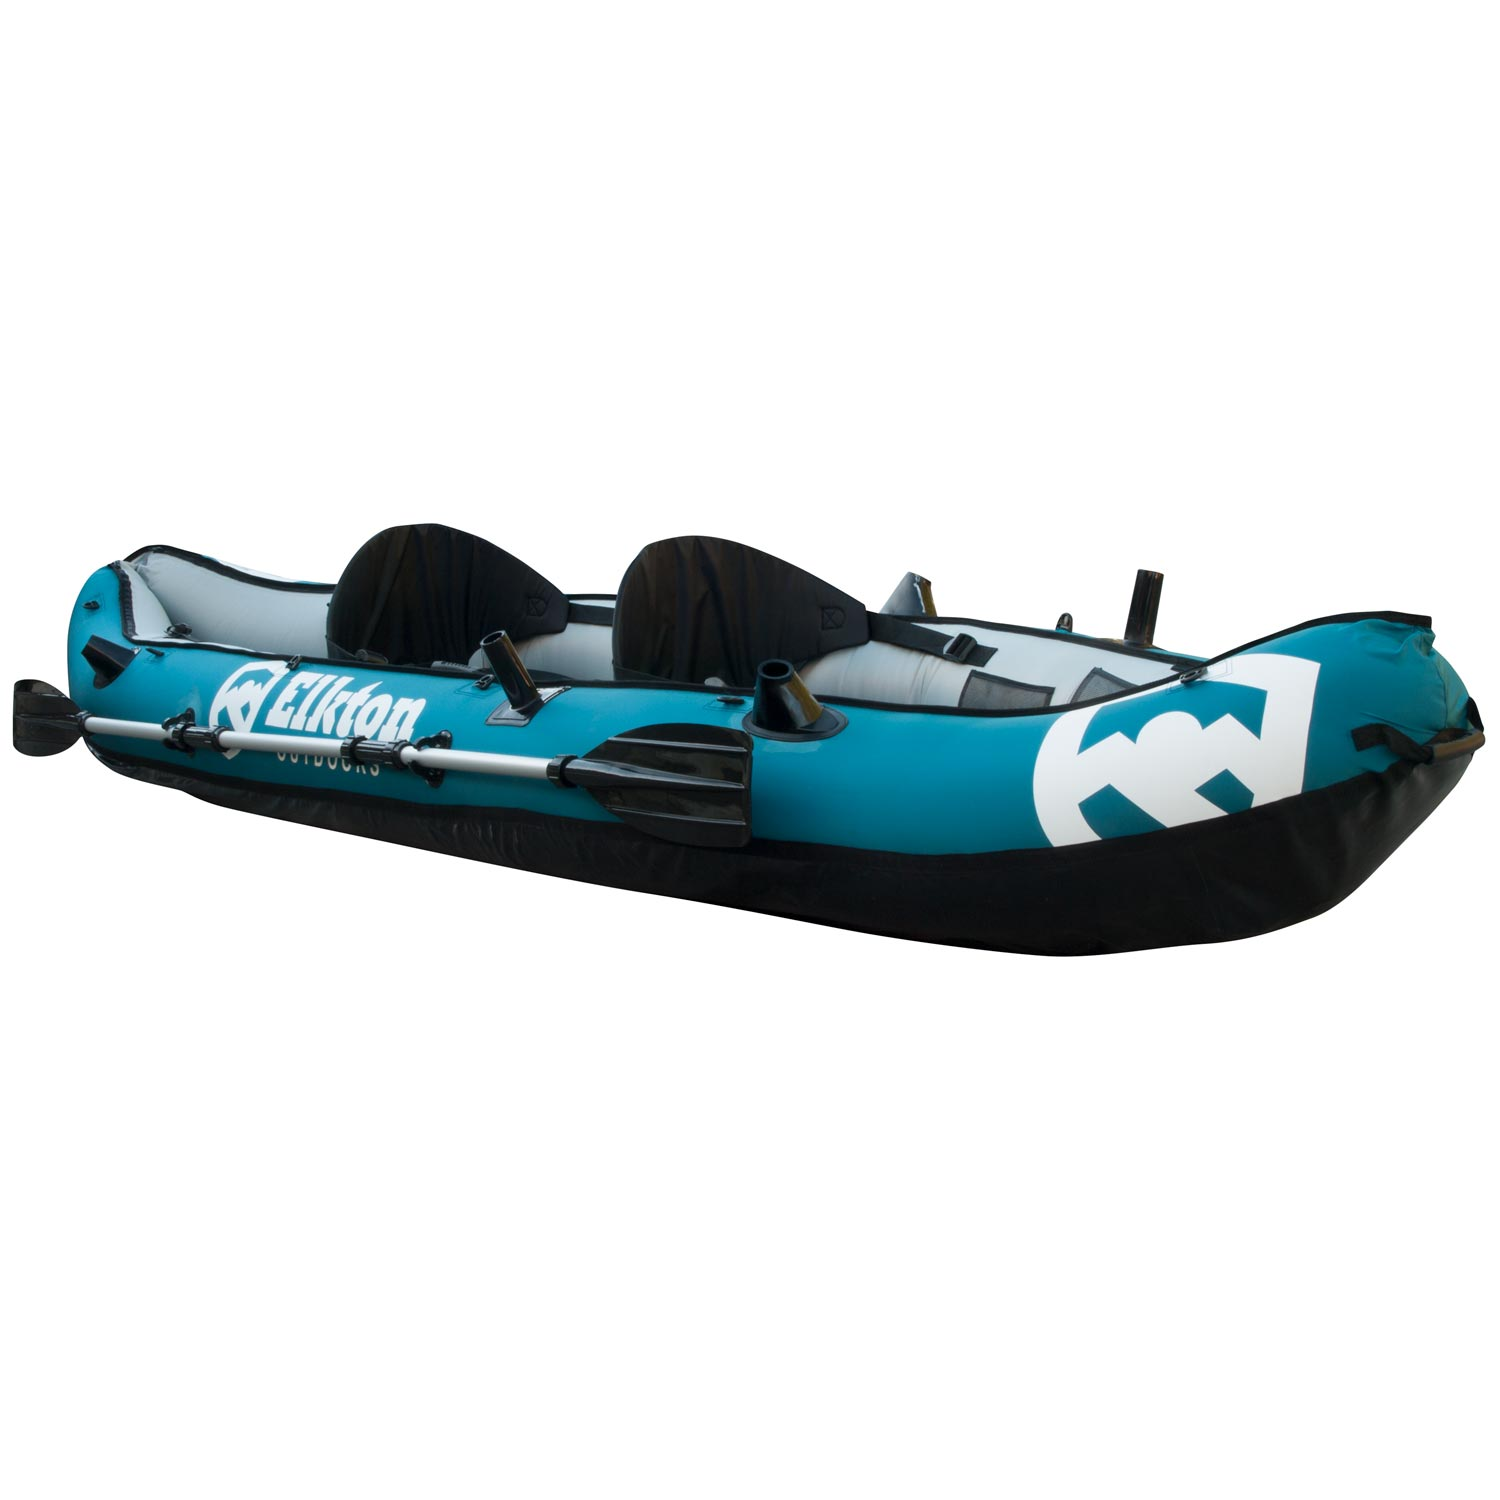 Elkton Outdoors 10' Foot Inflatable Tear Resistant Fishing Kayak With Double Sided Oars, Rod Holders, Foot Pump & Repair... by Elkton Outdoors